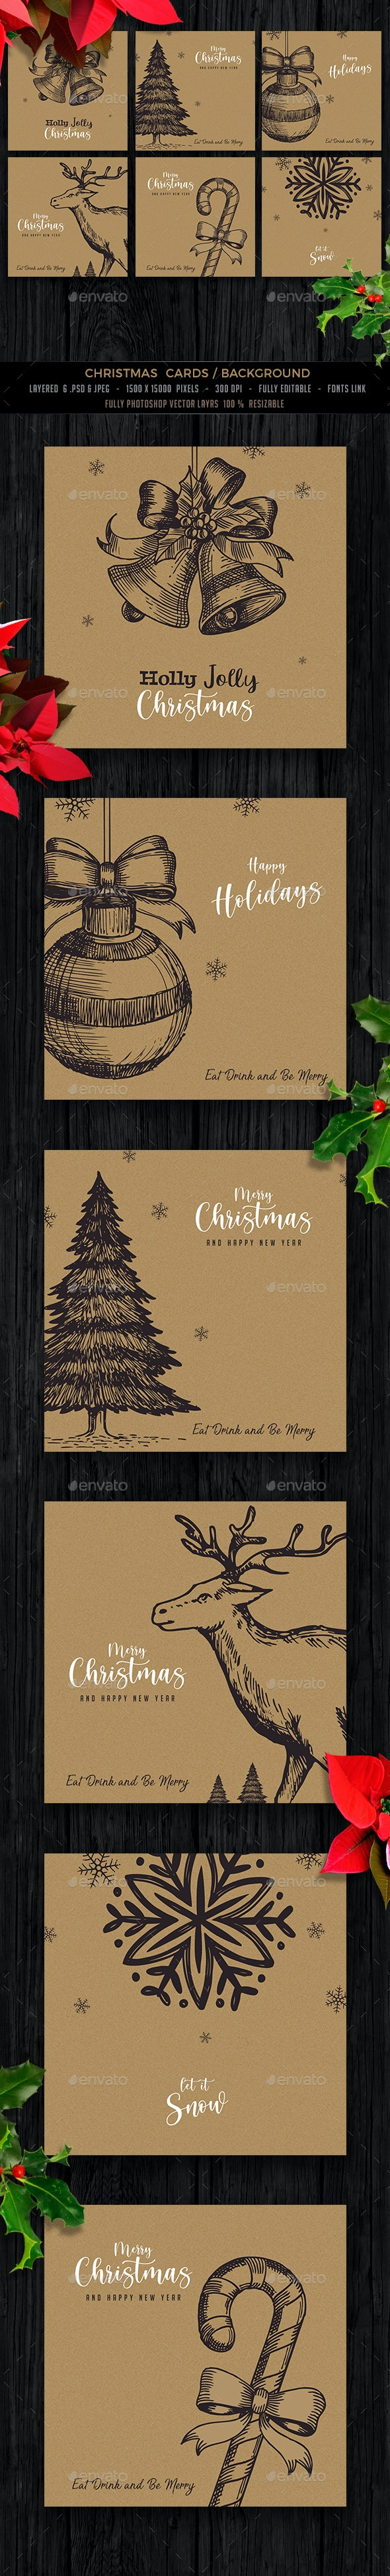 Hand Drawn Christmas Card - Backgrounds Graphics